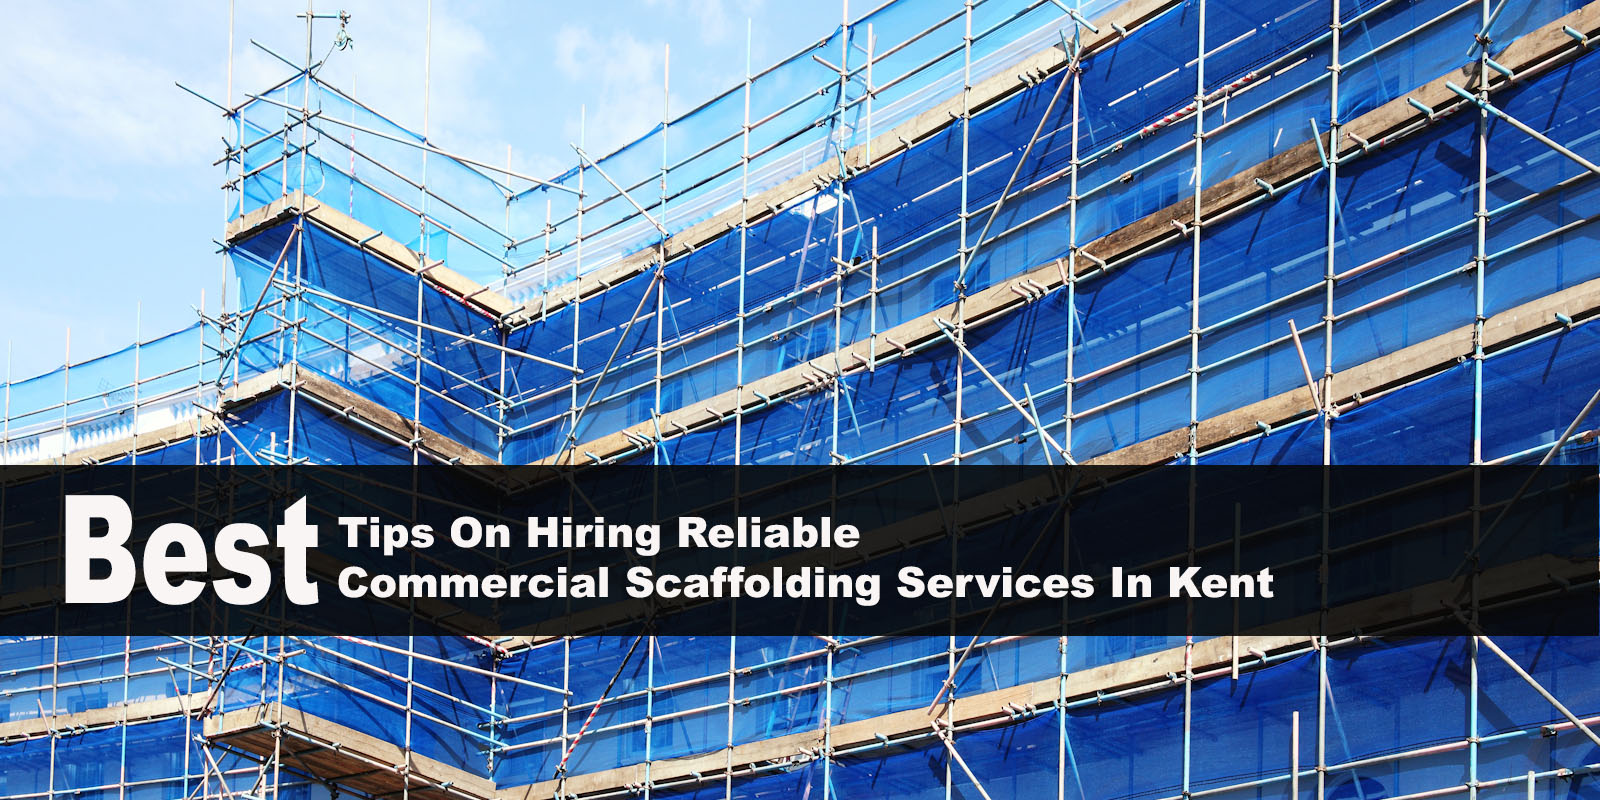 commercial-scaffolding-services-in-kent